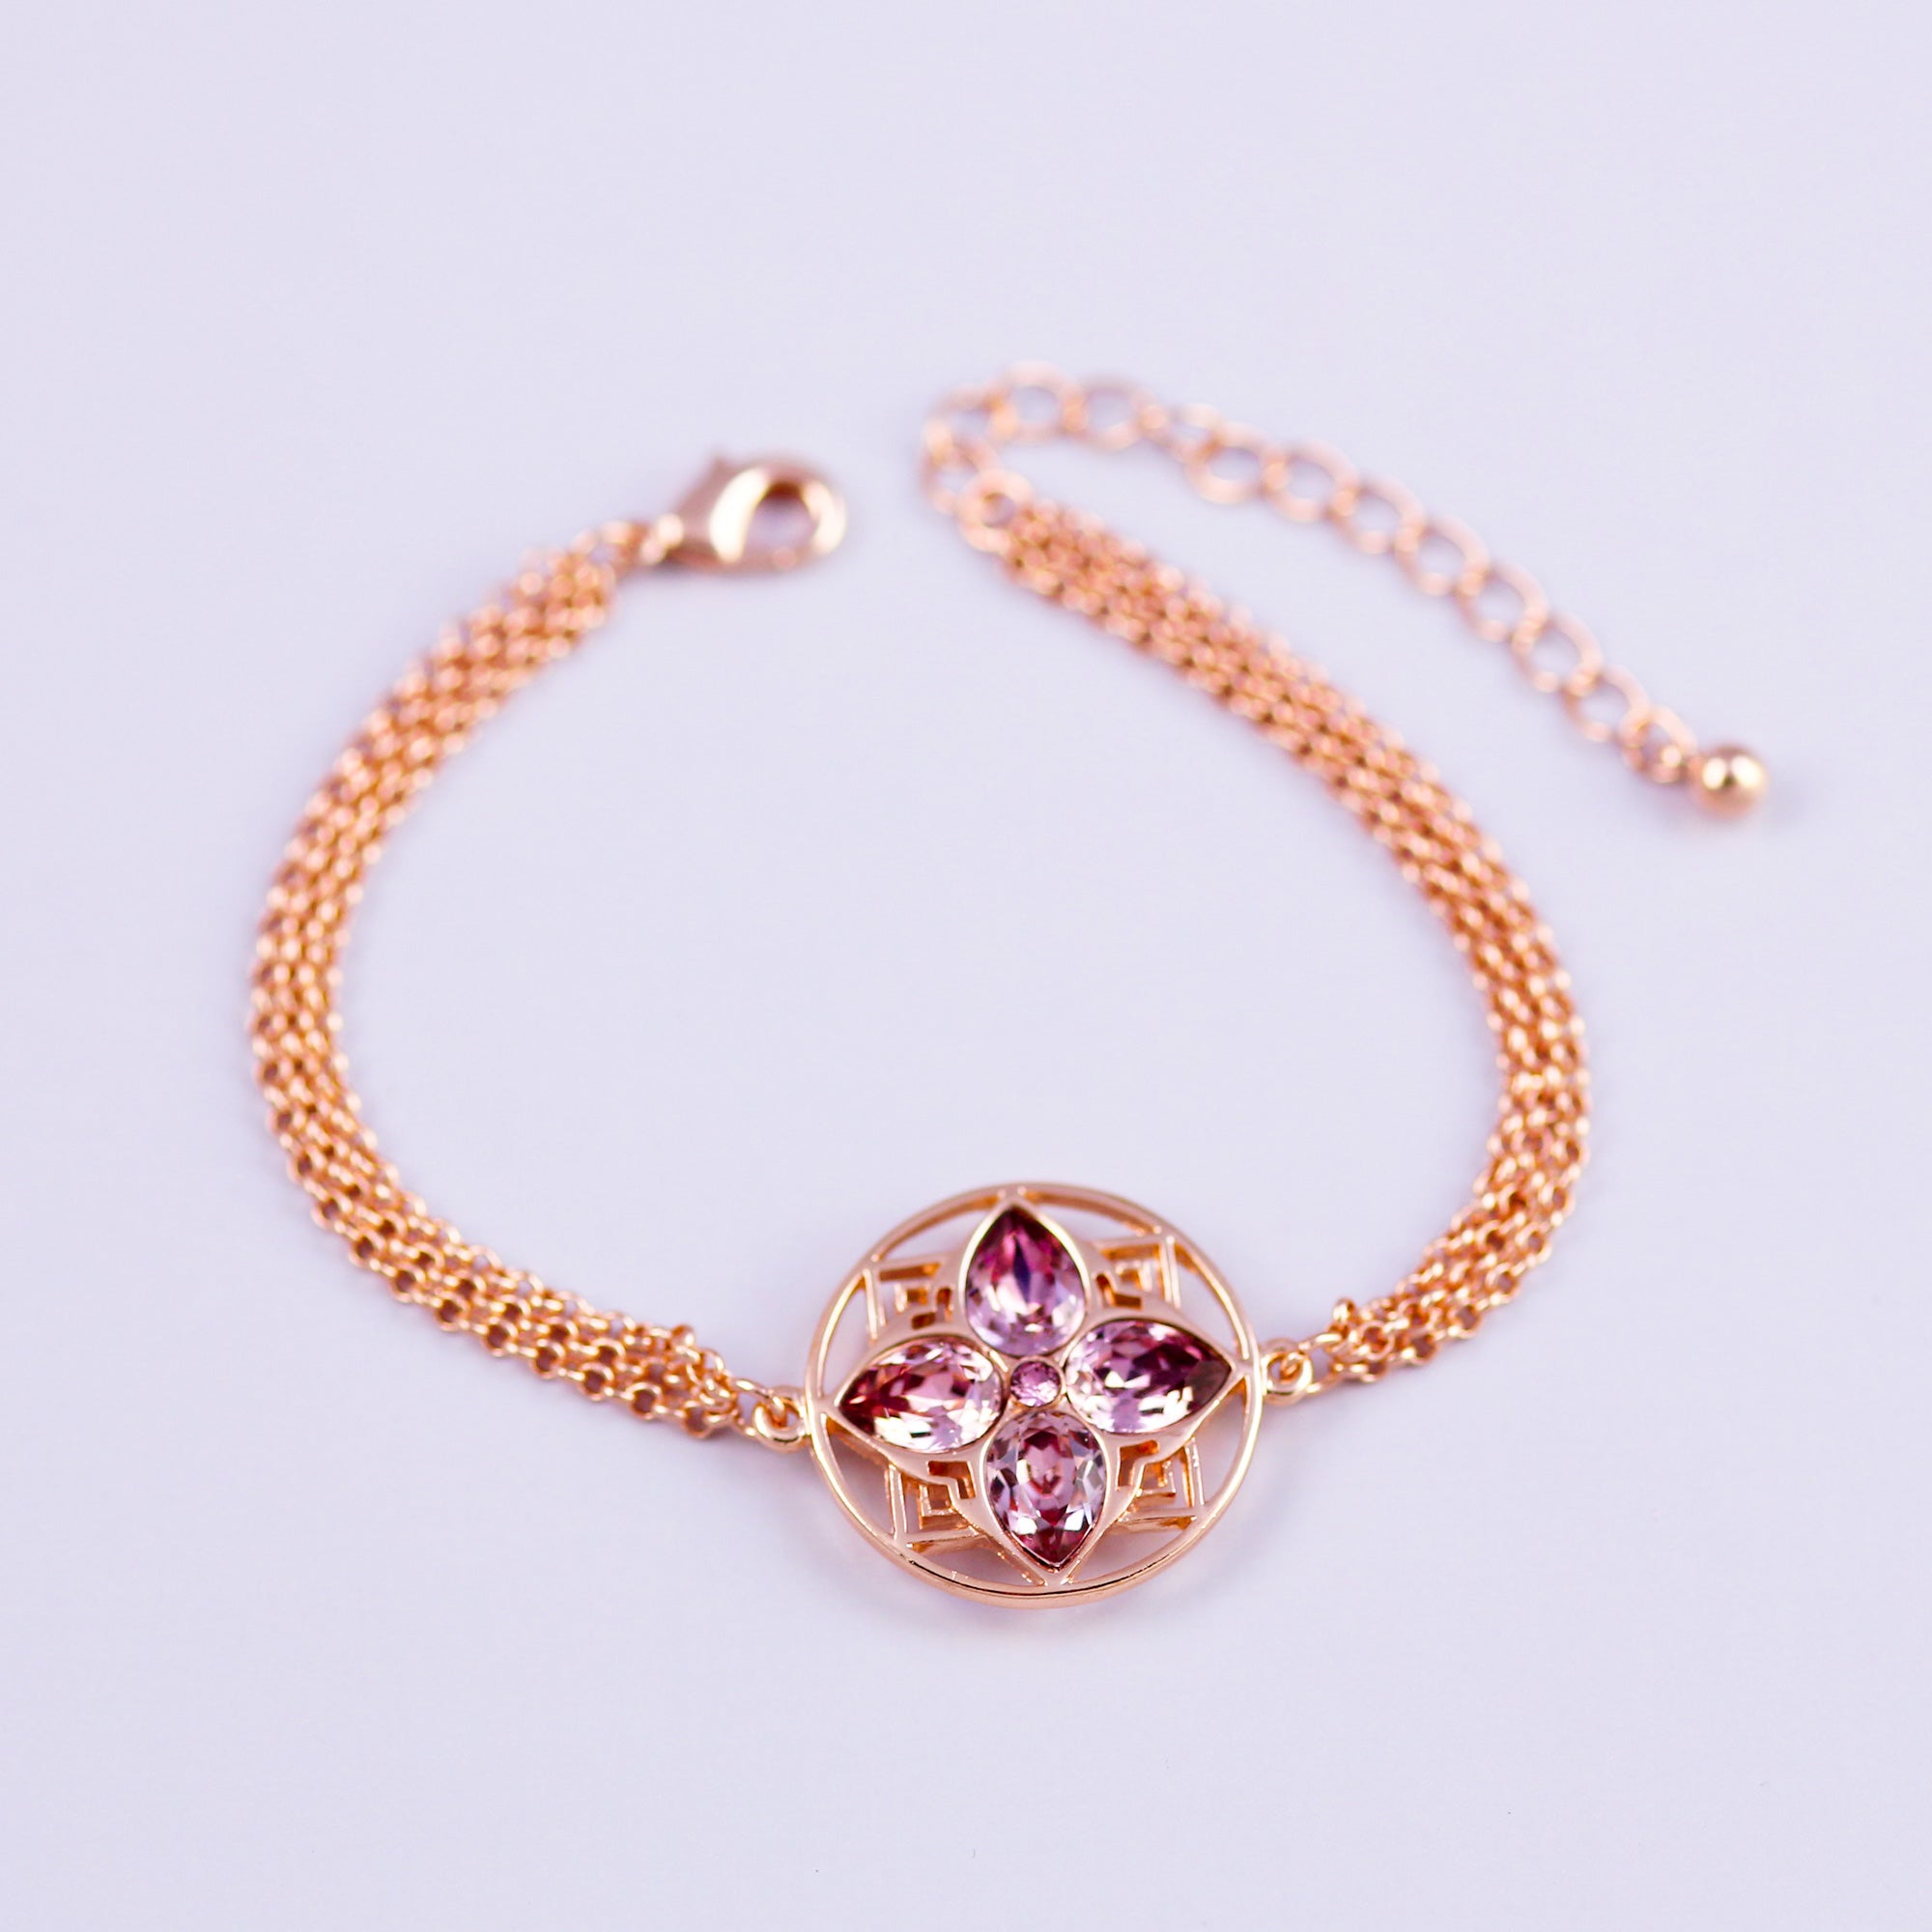 Gold & Antique Pink Four Petal Flower Bracelet